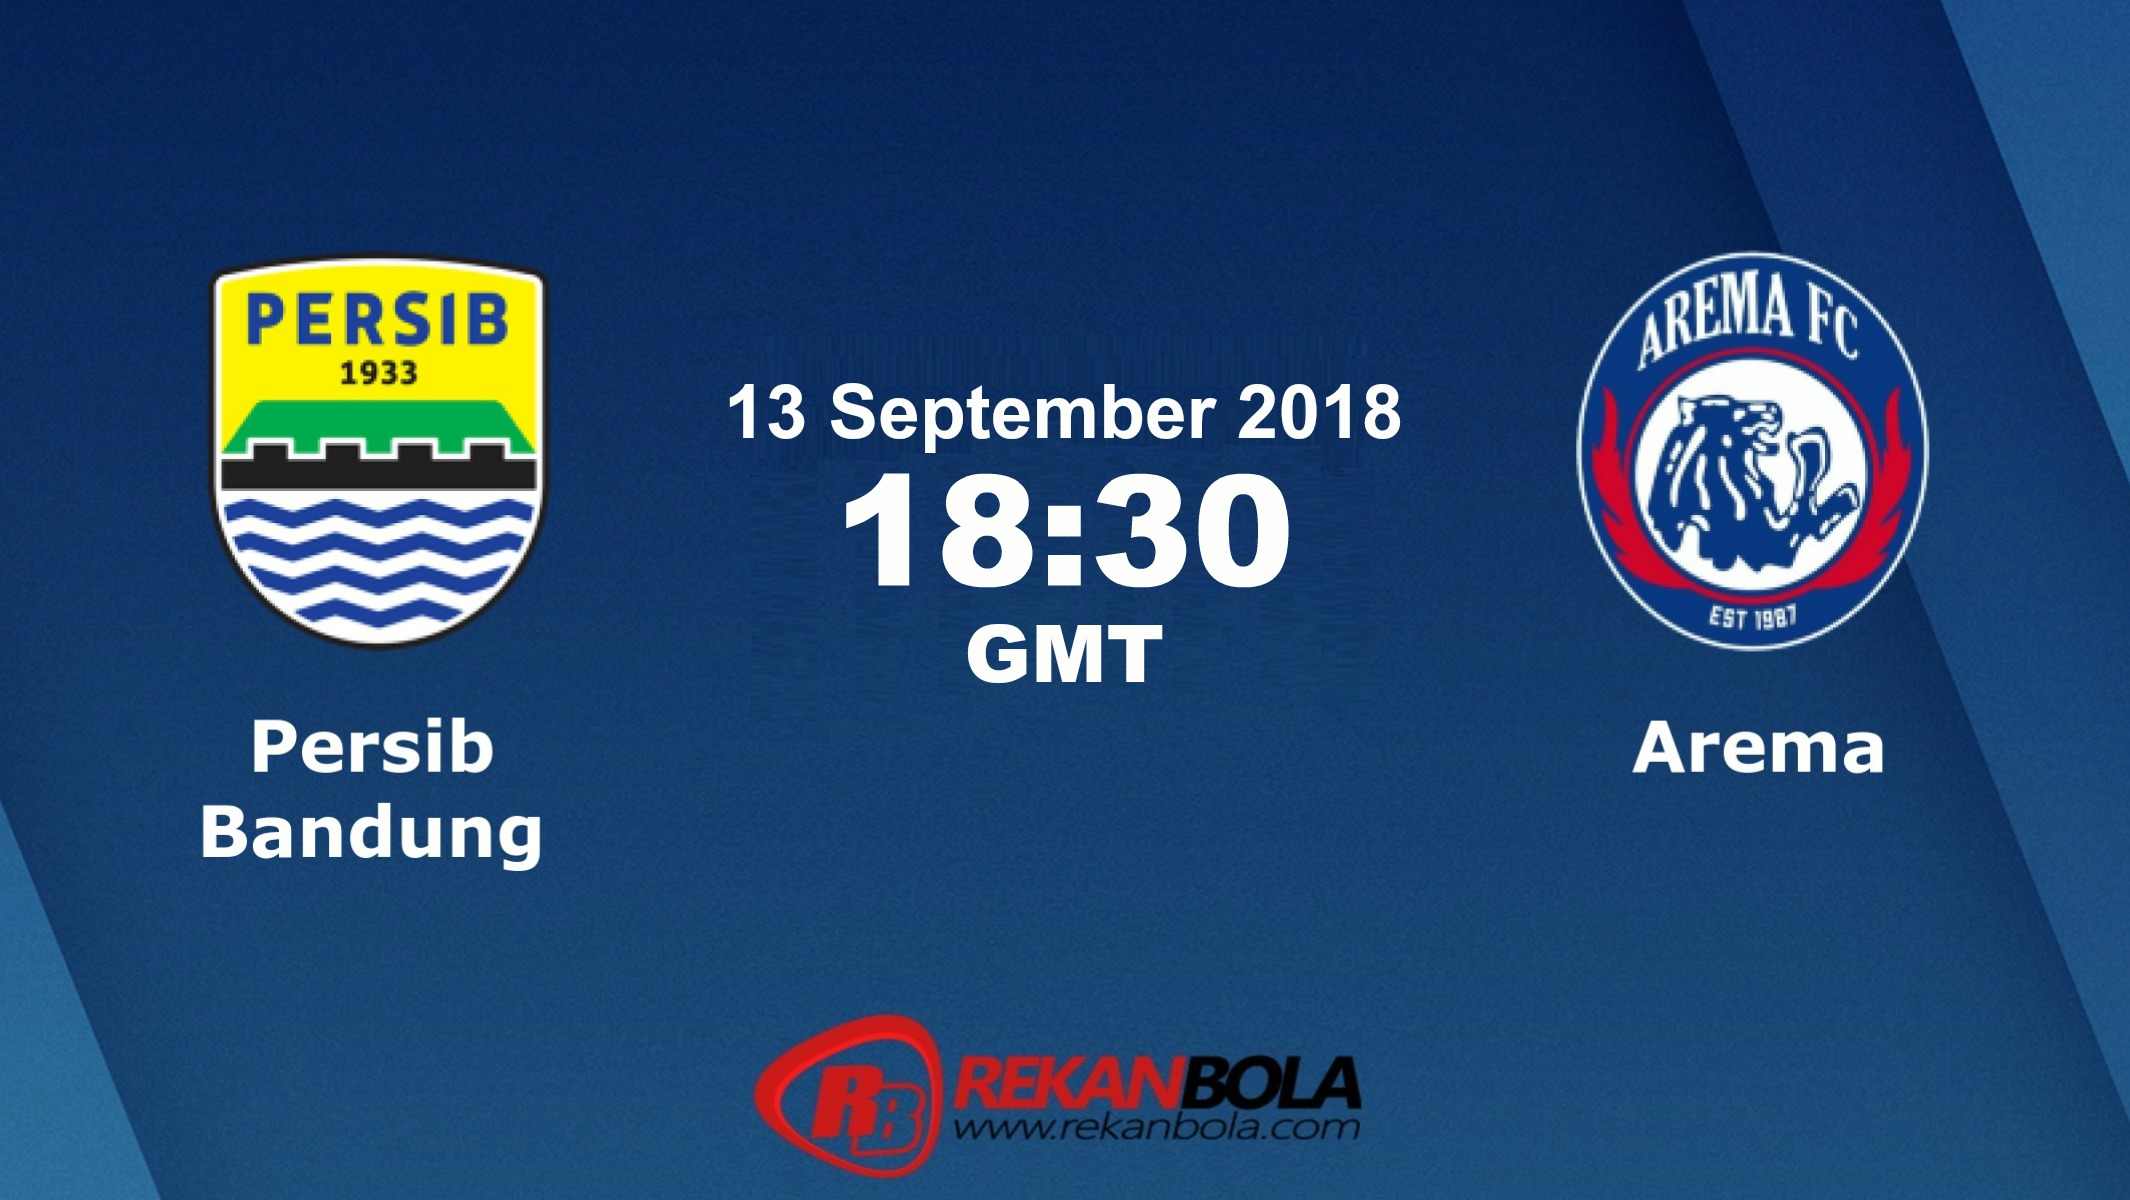 Nonton Siaran Live Streaming Persib Vs Arema 13 September 2018